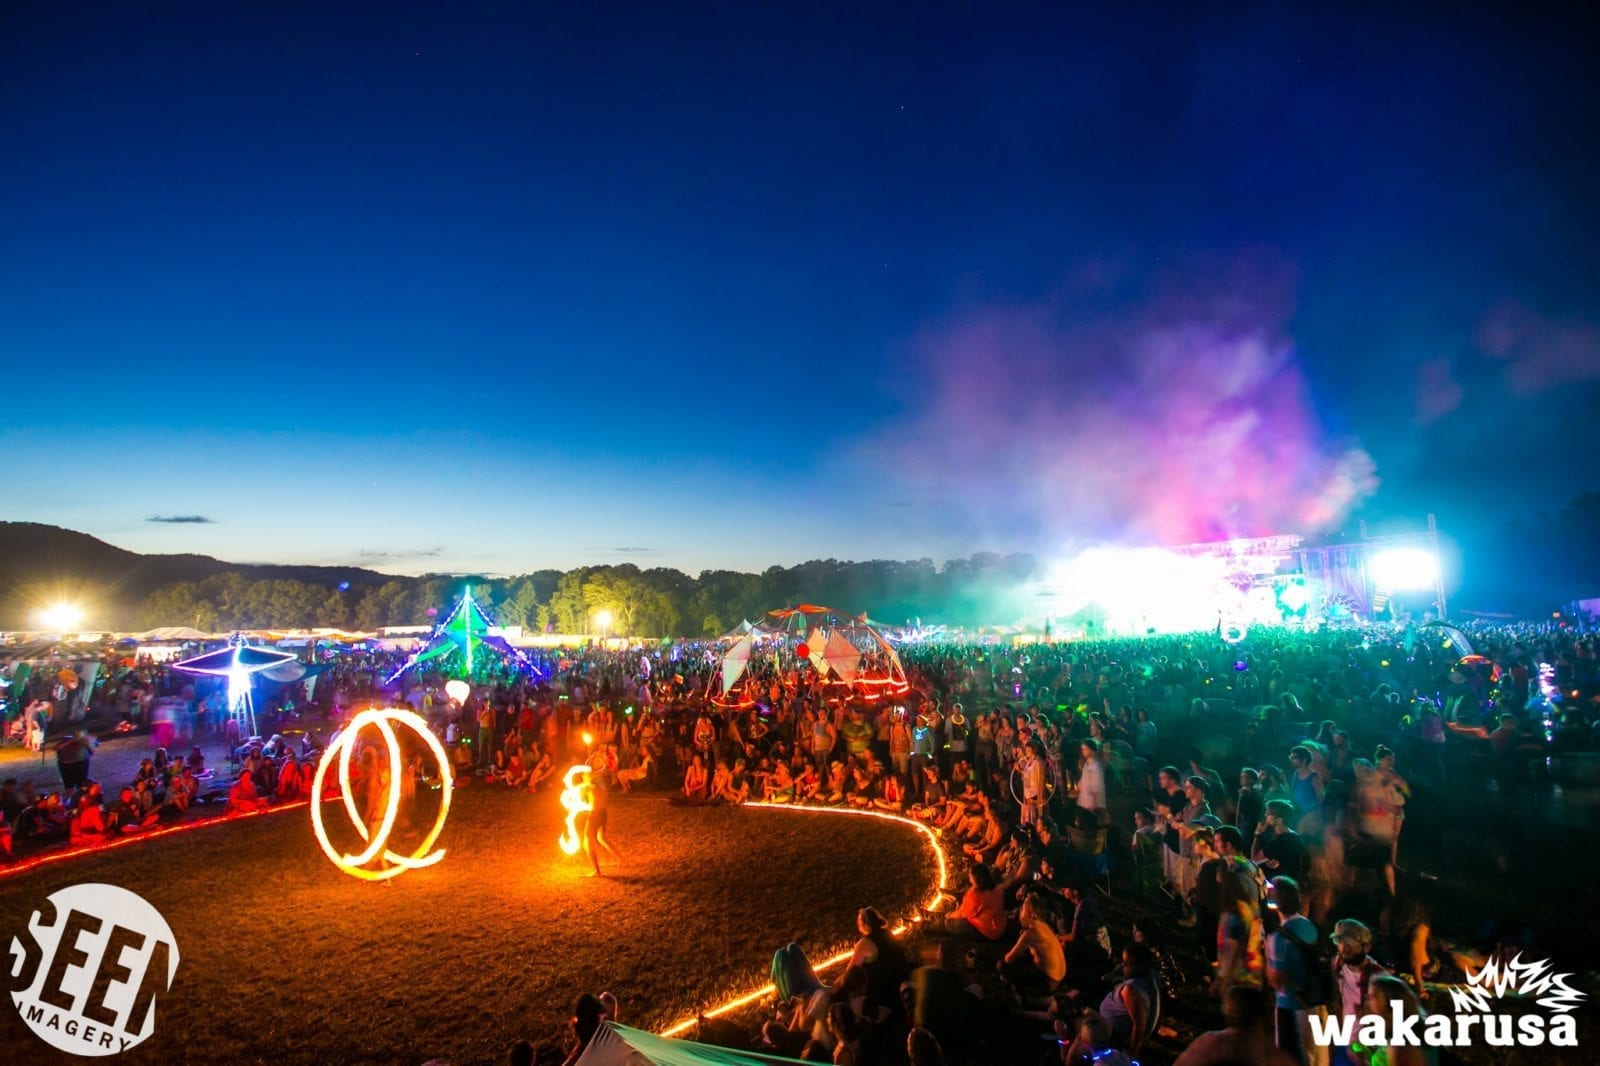 Wakarusa 2015 Final Lineup: Major Lazer, Thievery Corporation, Lotus, Dirty Heads